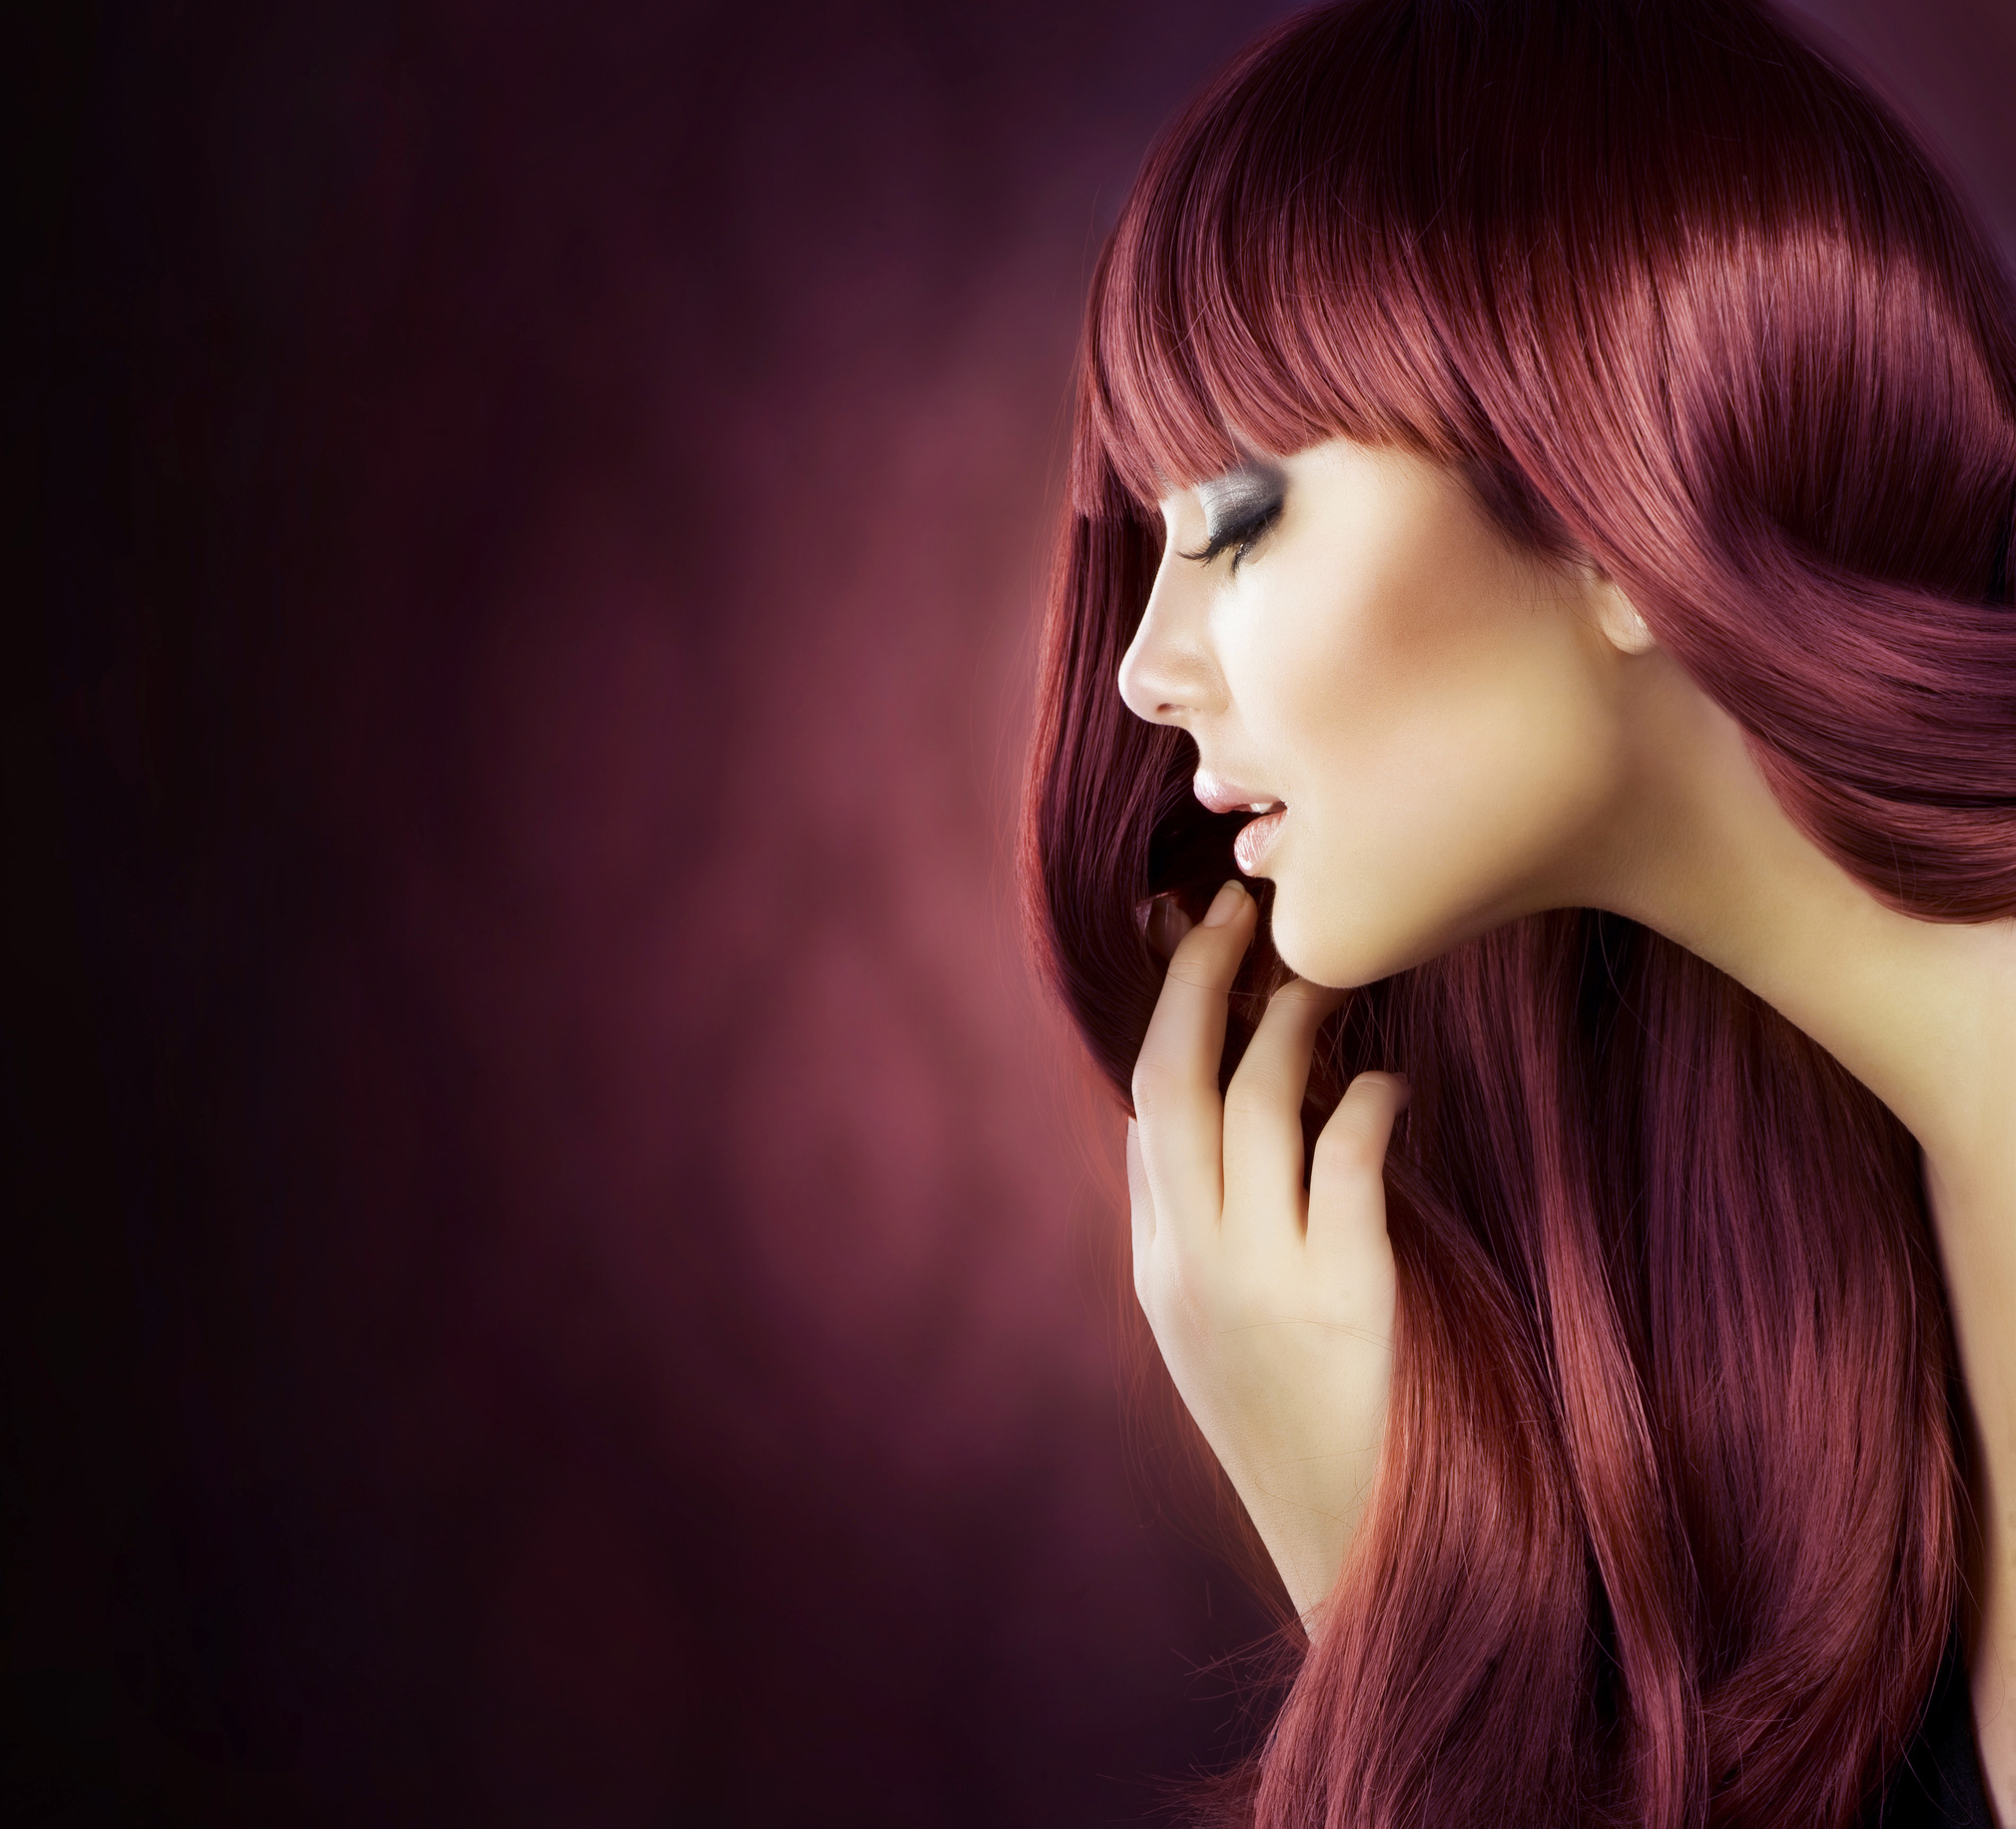 Hair Salon For Hair Coloring : For further information and prices, please visit the Hair page